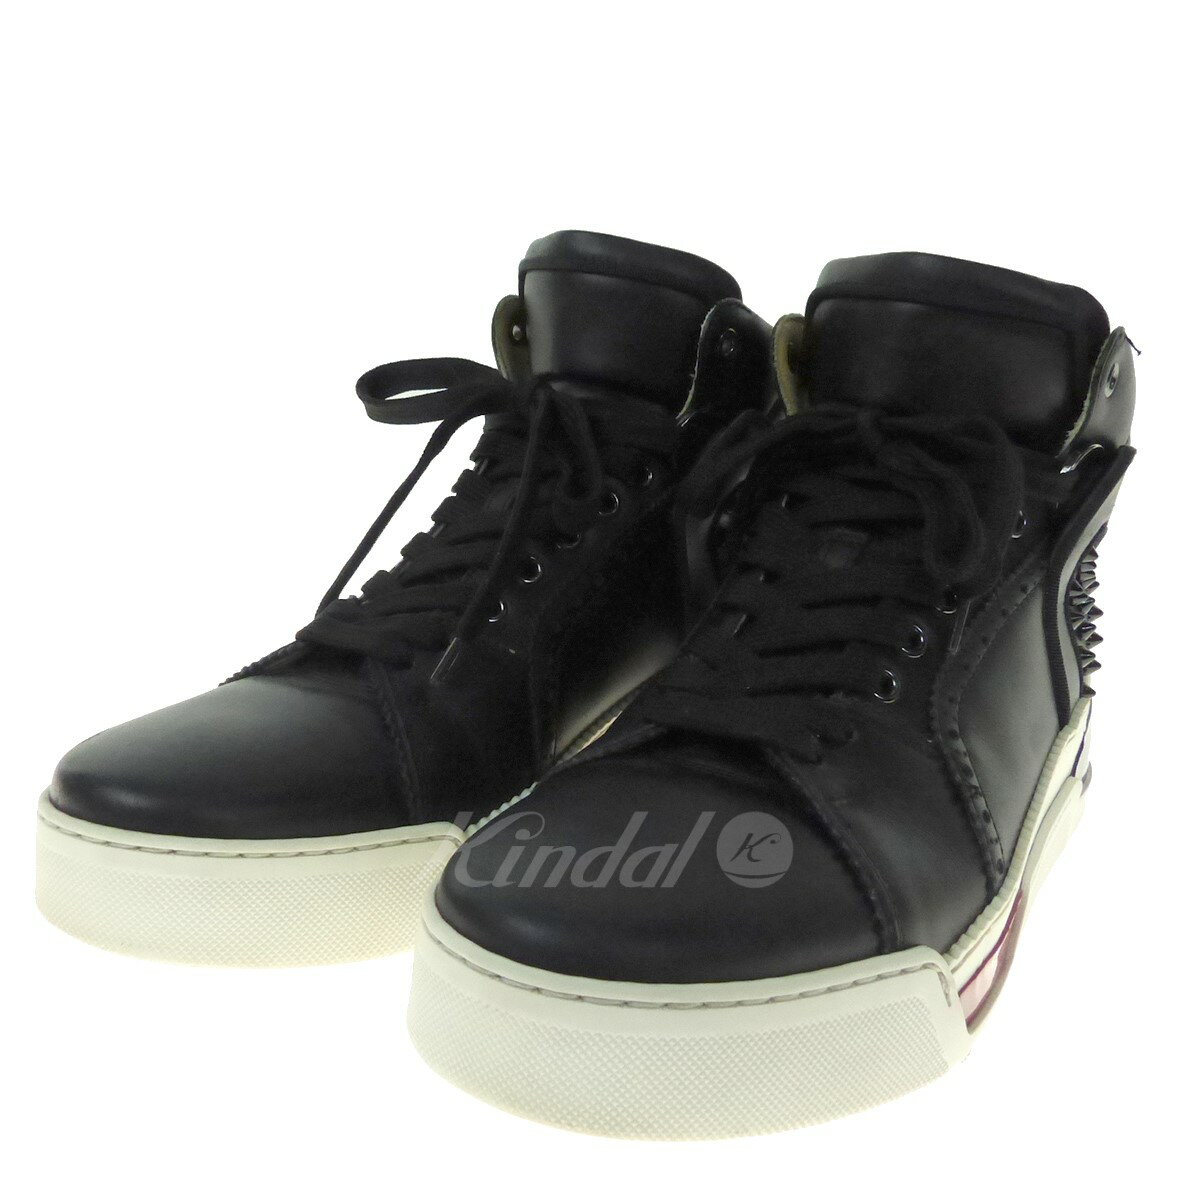 712b69967a6 CHRISTIAN LOUBOUTIN LOUBIKICK FLAT CLF leather higher frequency elimination  sneakers 3170128 black size: 40 1/2 (クリスチャンルブタン)